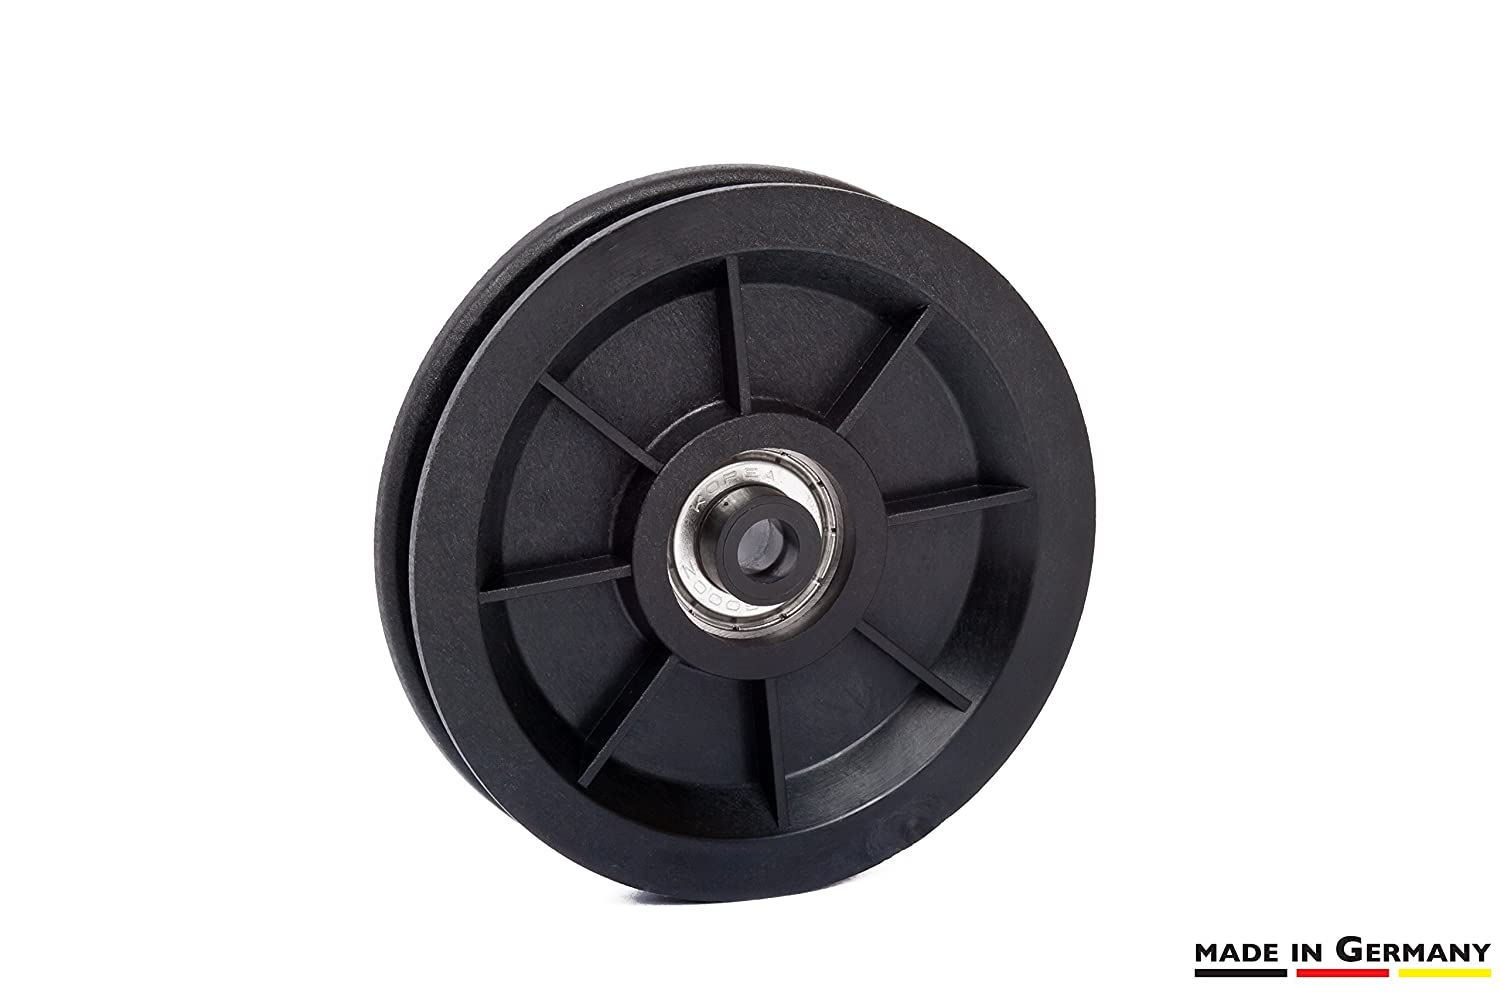 90 MM, Drahtseilrolle Pulley: Amazon.co.uk: Business, Industry & Science